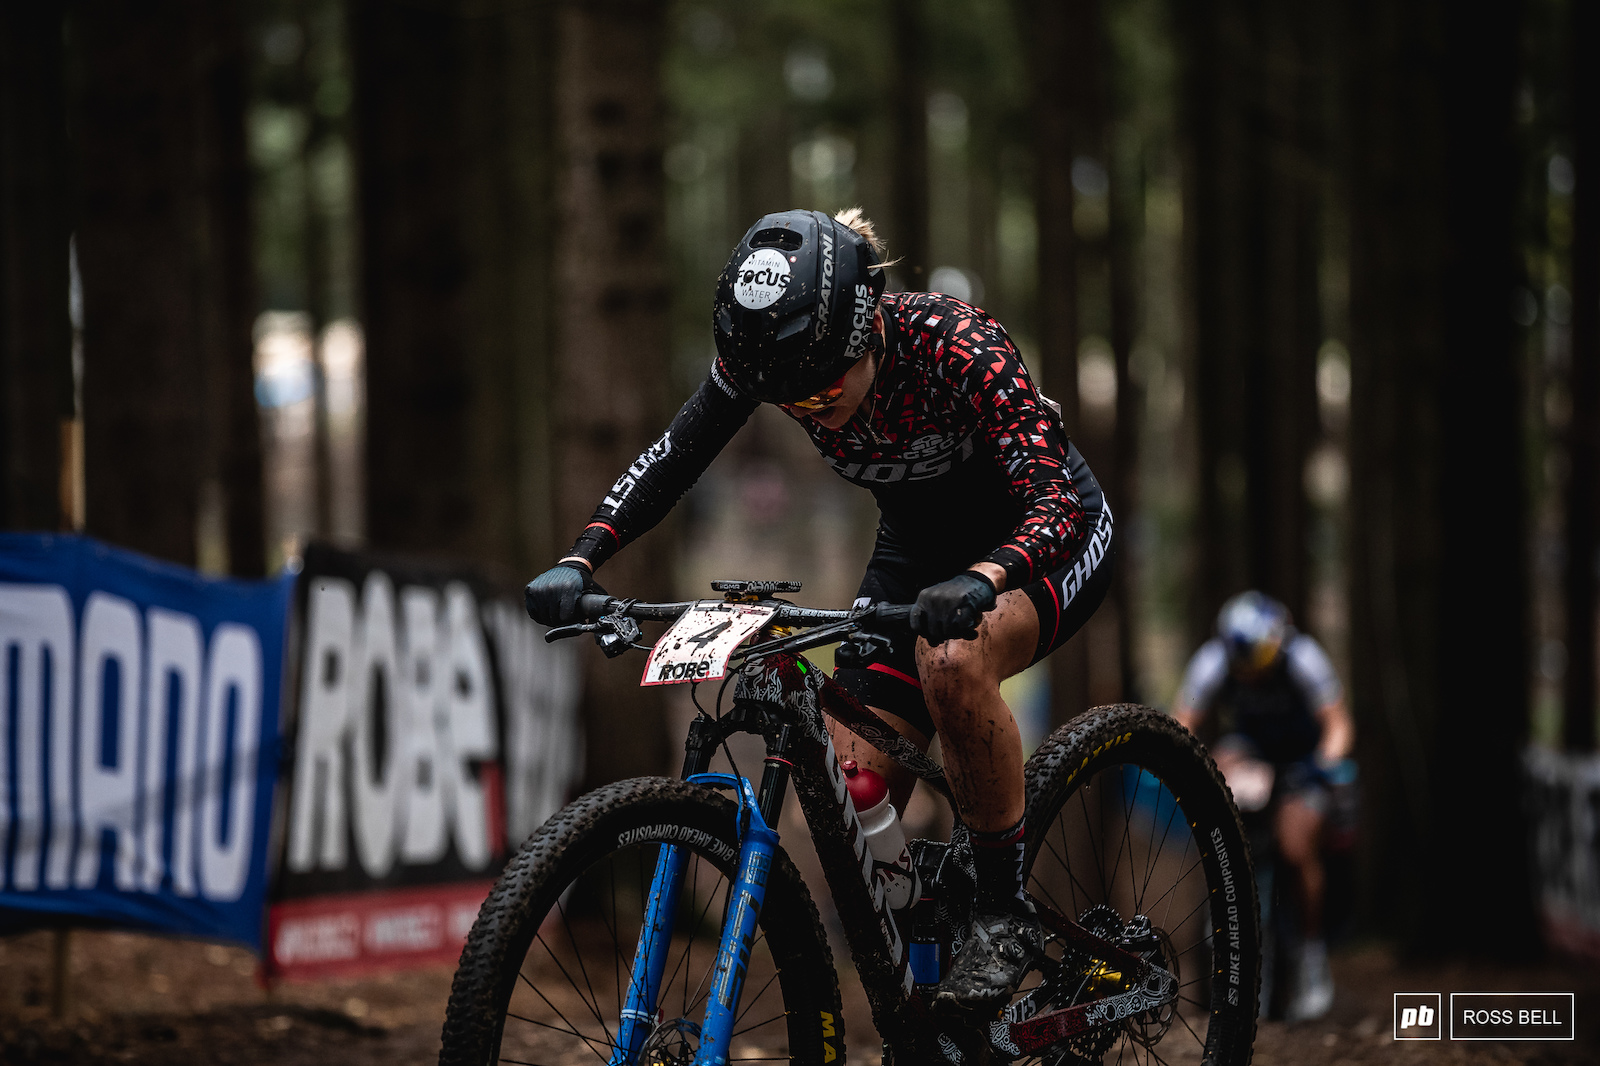 Sina Frei made it 2 Ghost riders in the top 10.